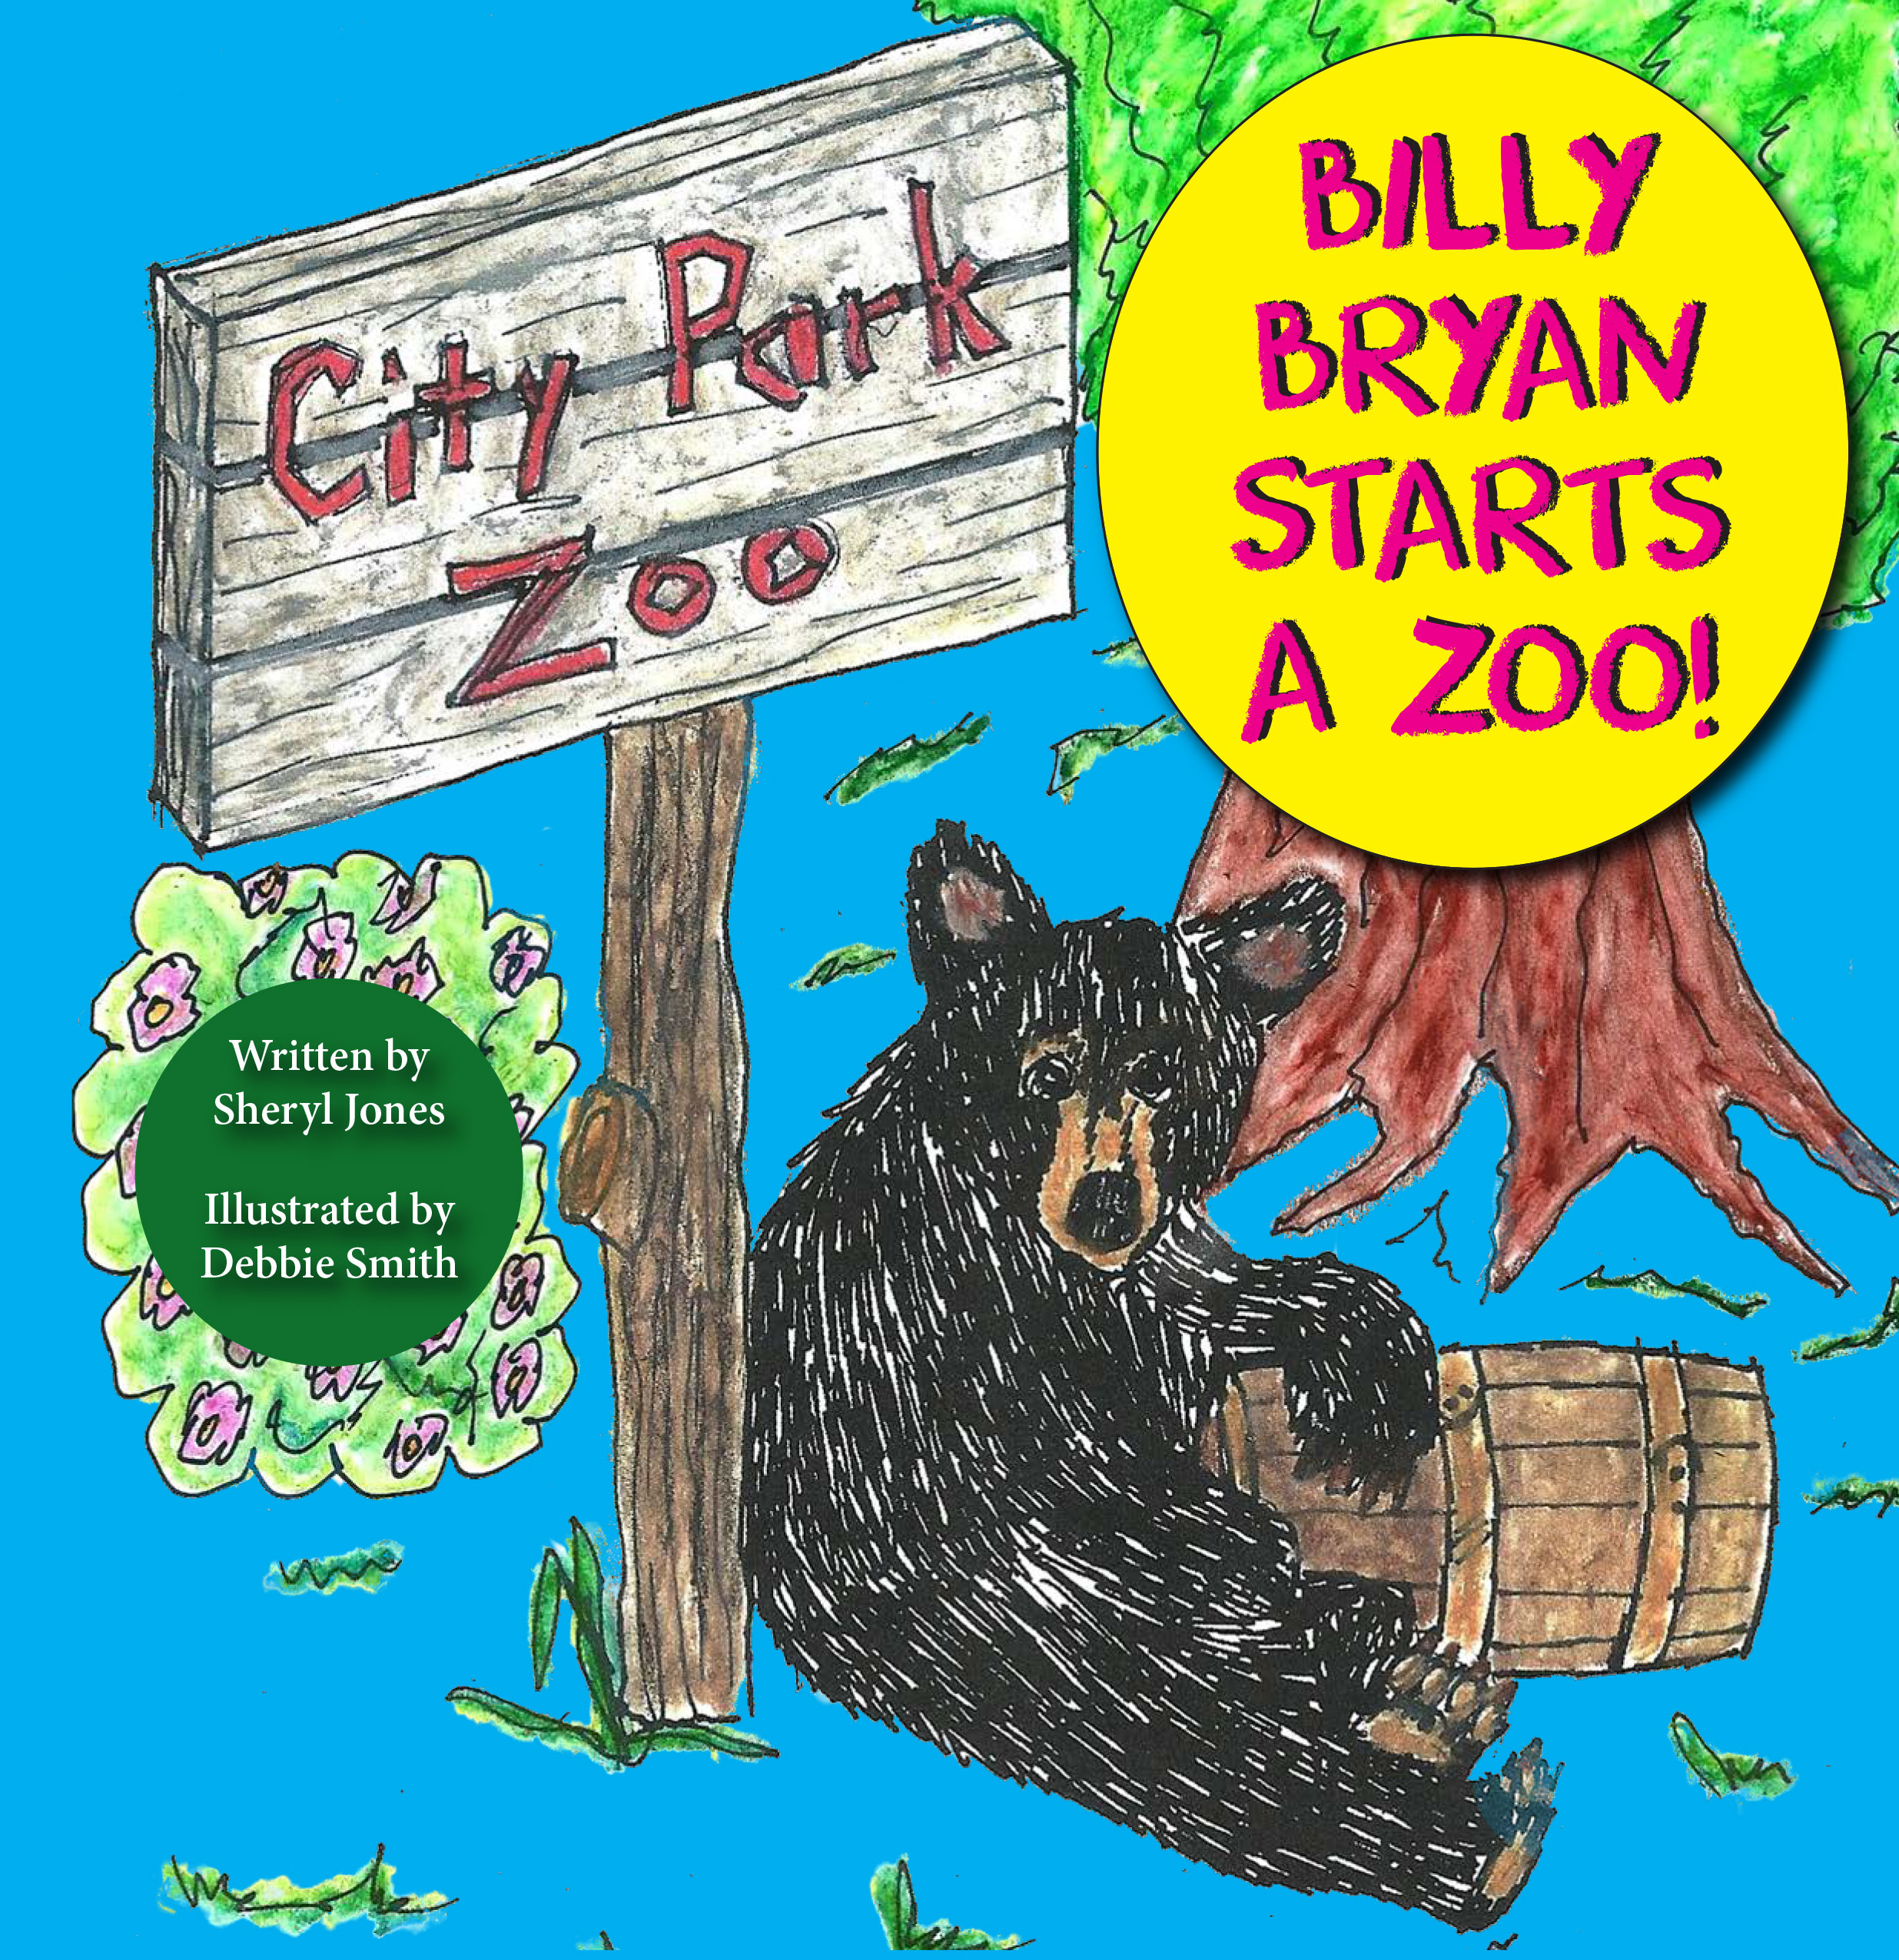 Billy Bryan Starts a Zoo! Image